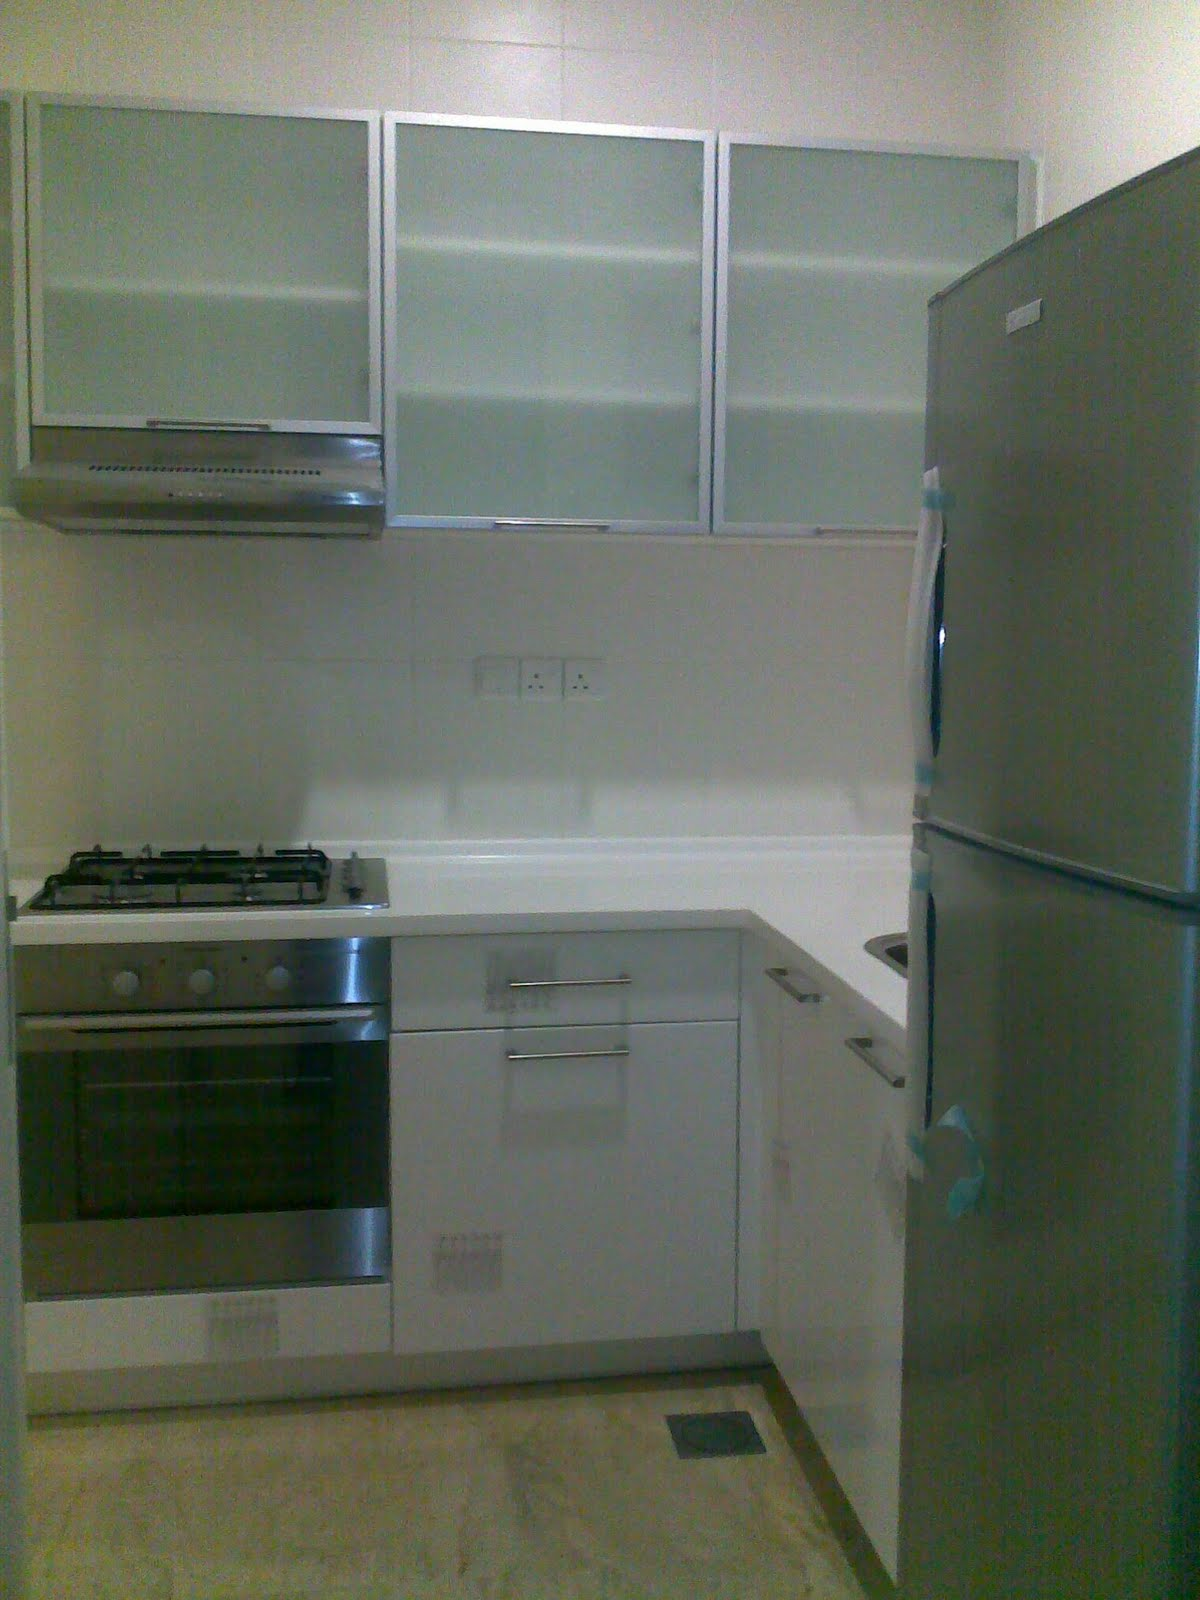 doors emptied everything out of the kitchen kitchen cabimakeover